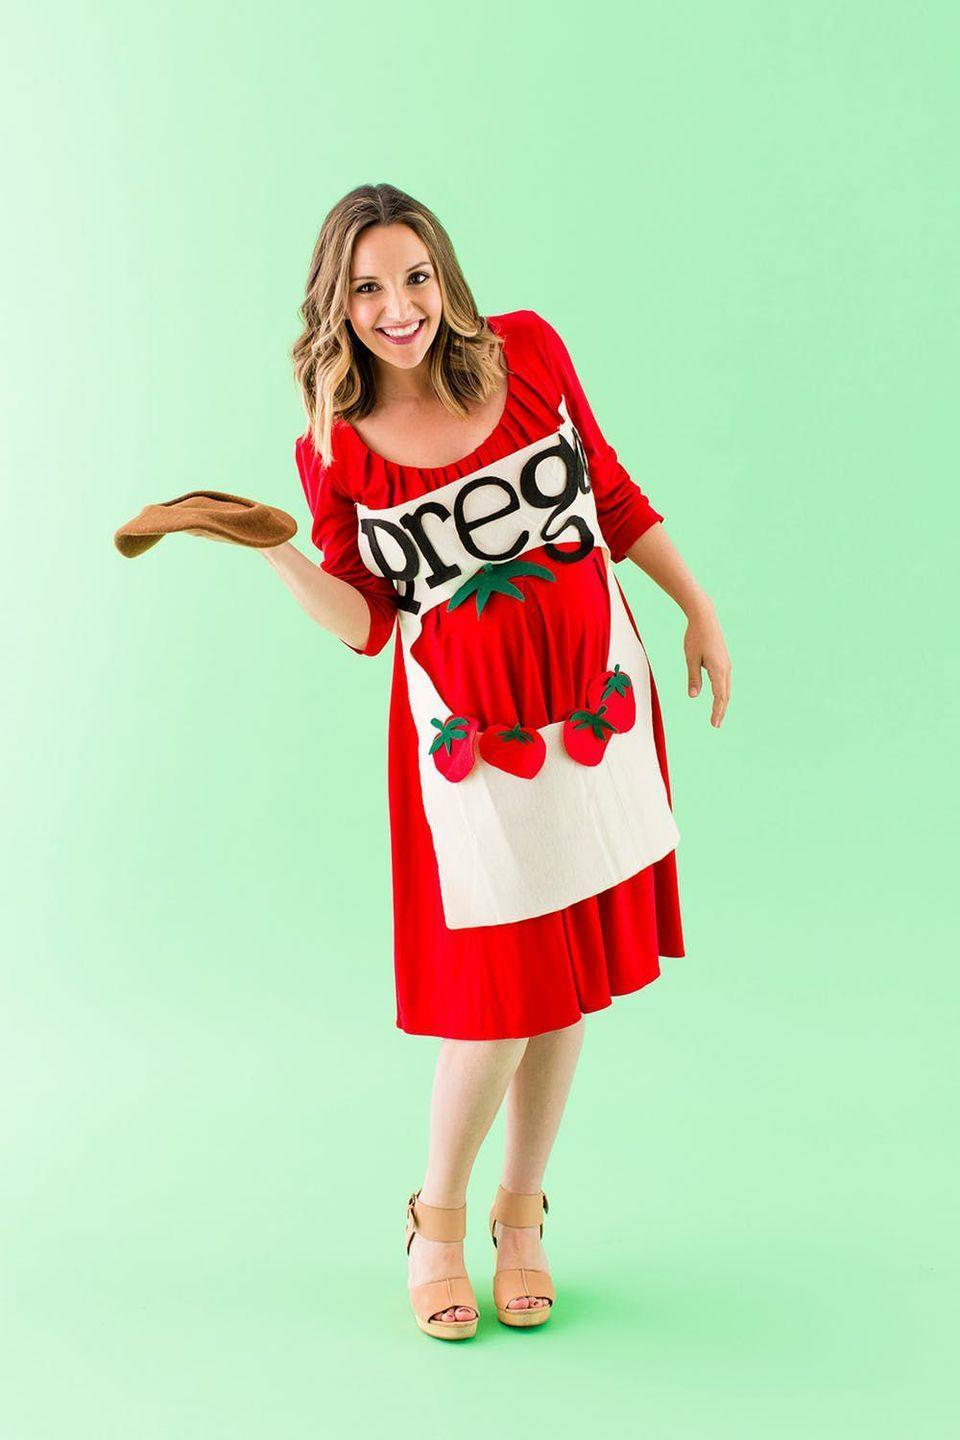 """<p>What better maternity Halloween costume than a can of Prego?</p><p><strong>Get the tutorial at <a href=""""https://www.brit.co/8-easy-diy-halloween-maternity-costumes/"""" rel=""""nofollow noopener"""" target=""""_blank"""" data-ylk=""""slk:Brit & Co."""" class=""""link rapid-noclick-resp"""">Brit & Co.</a></strong></p><p><a class=""""link rapid-noclick-resp"""" href=""""https://www.amazon.com/Mother-Bee-Womens-Maternity-Pockets/dp/B07BB334SJ/?tag=syn-yahoo-20&ascsubtag=%5Bartid%7C10050.g.4972%5Bsrc%7Cyahoo-us"""" rel=""""nofollow noopener"""" target=""""_blank"""" data-ylk=""""slk:SHOP RED DRESS"""">SHOP RED DRESS</a> </p>"""